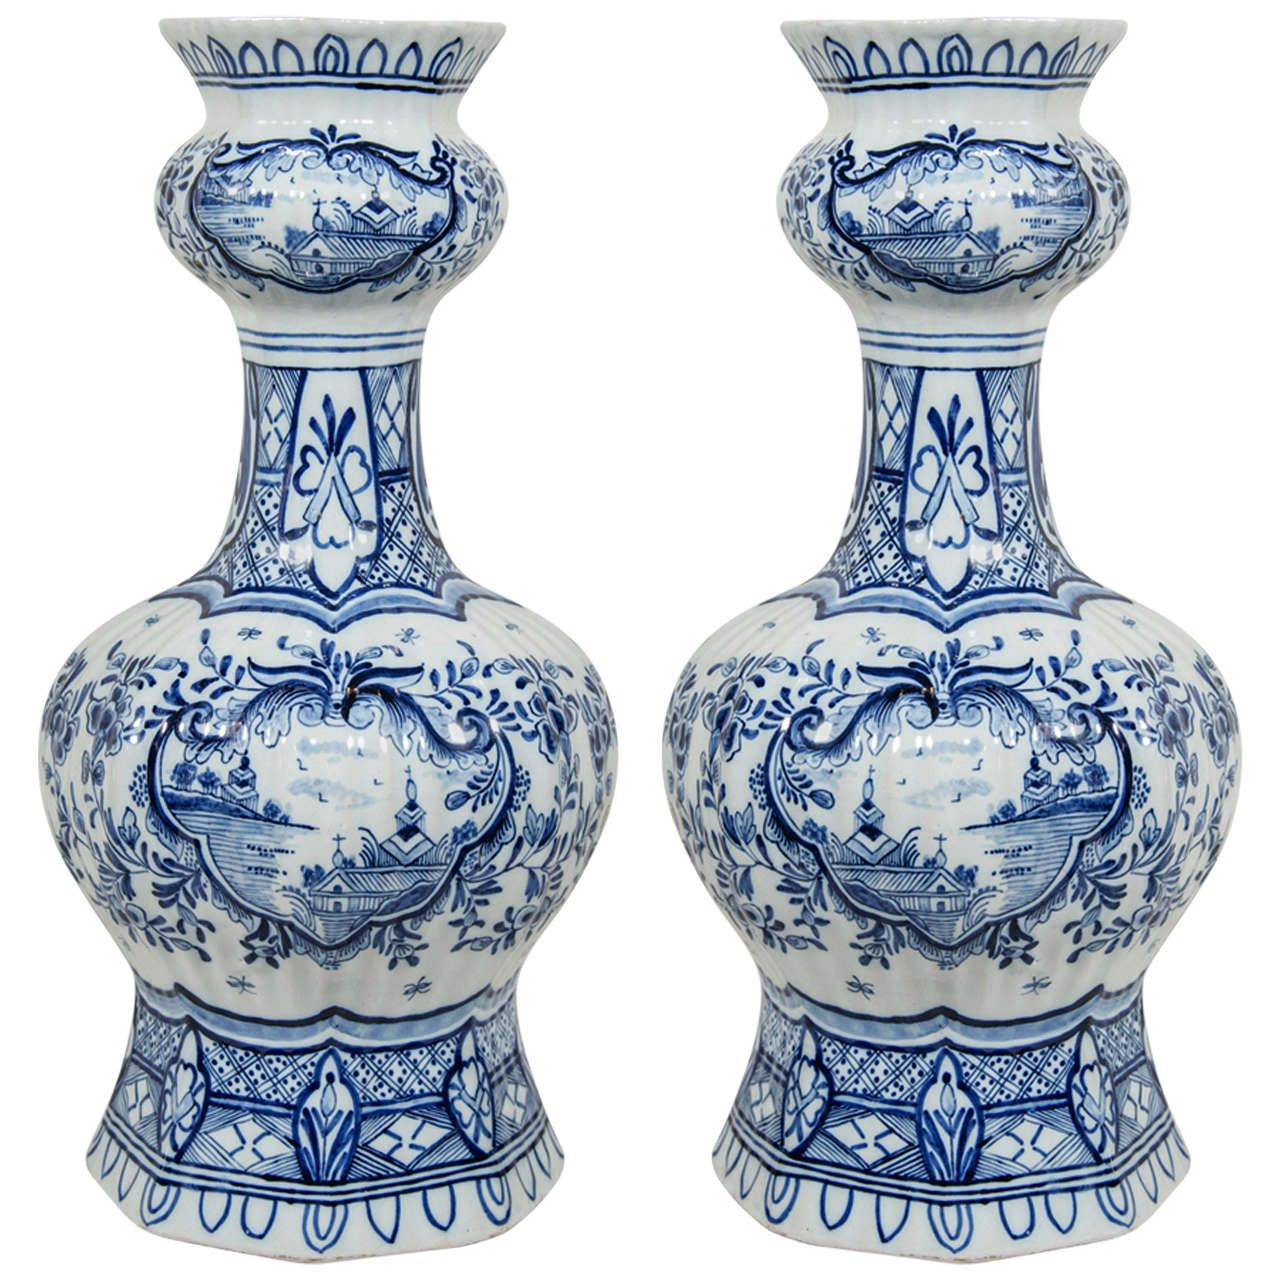 traditional dutch tulip vases of pair of blue and white dutch delft vases with chinoiserie scenes throughout antique and modern furniture jewelry fashion art